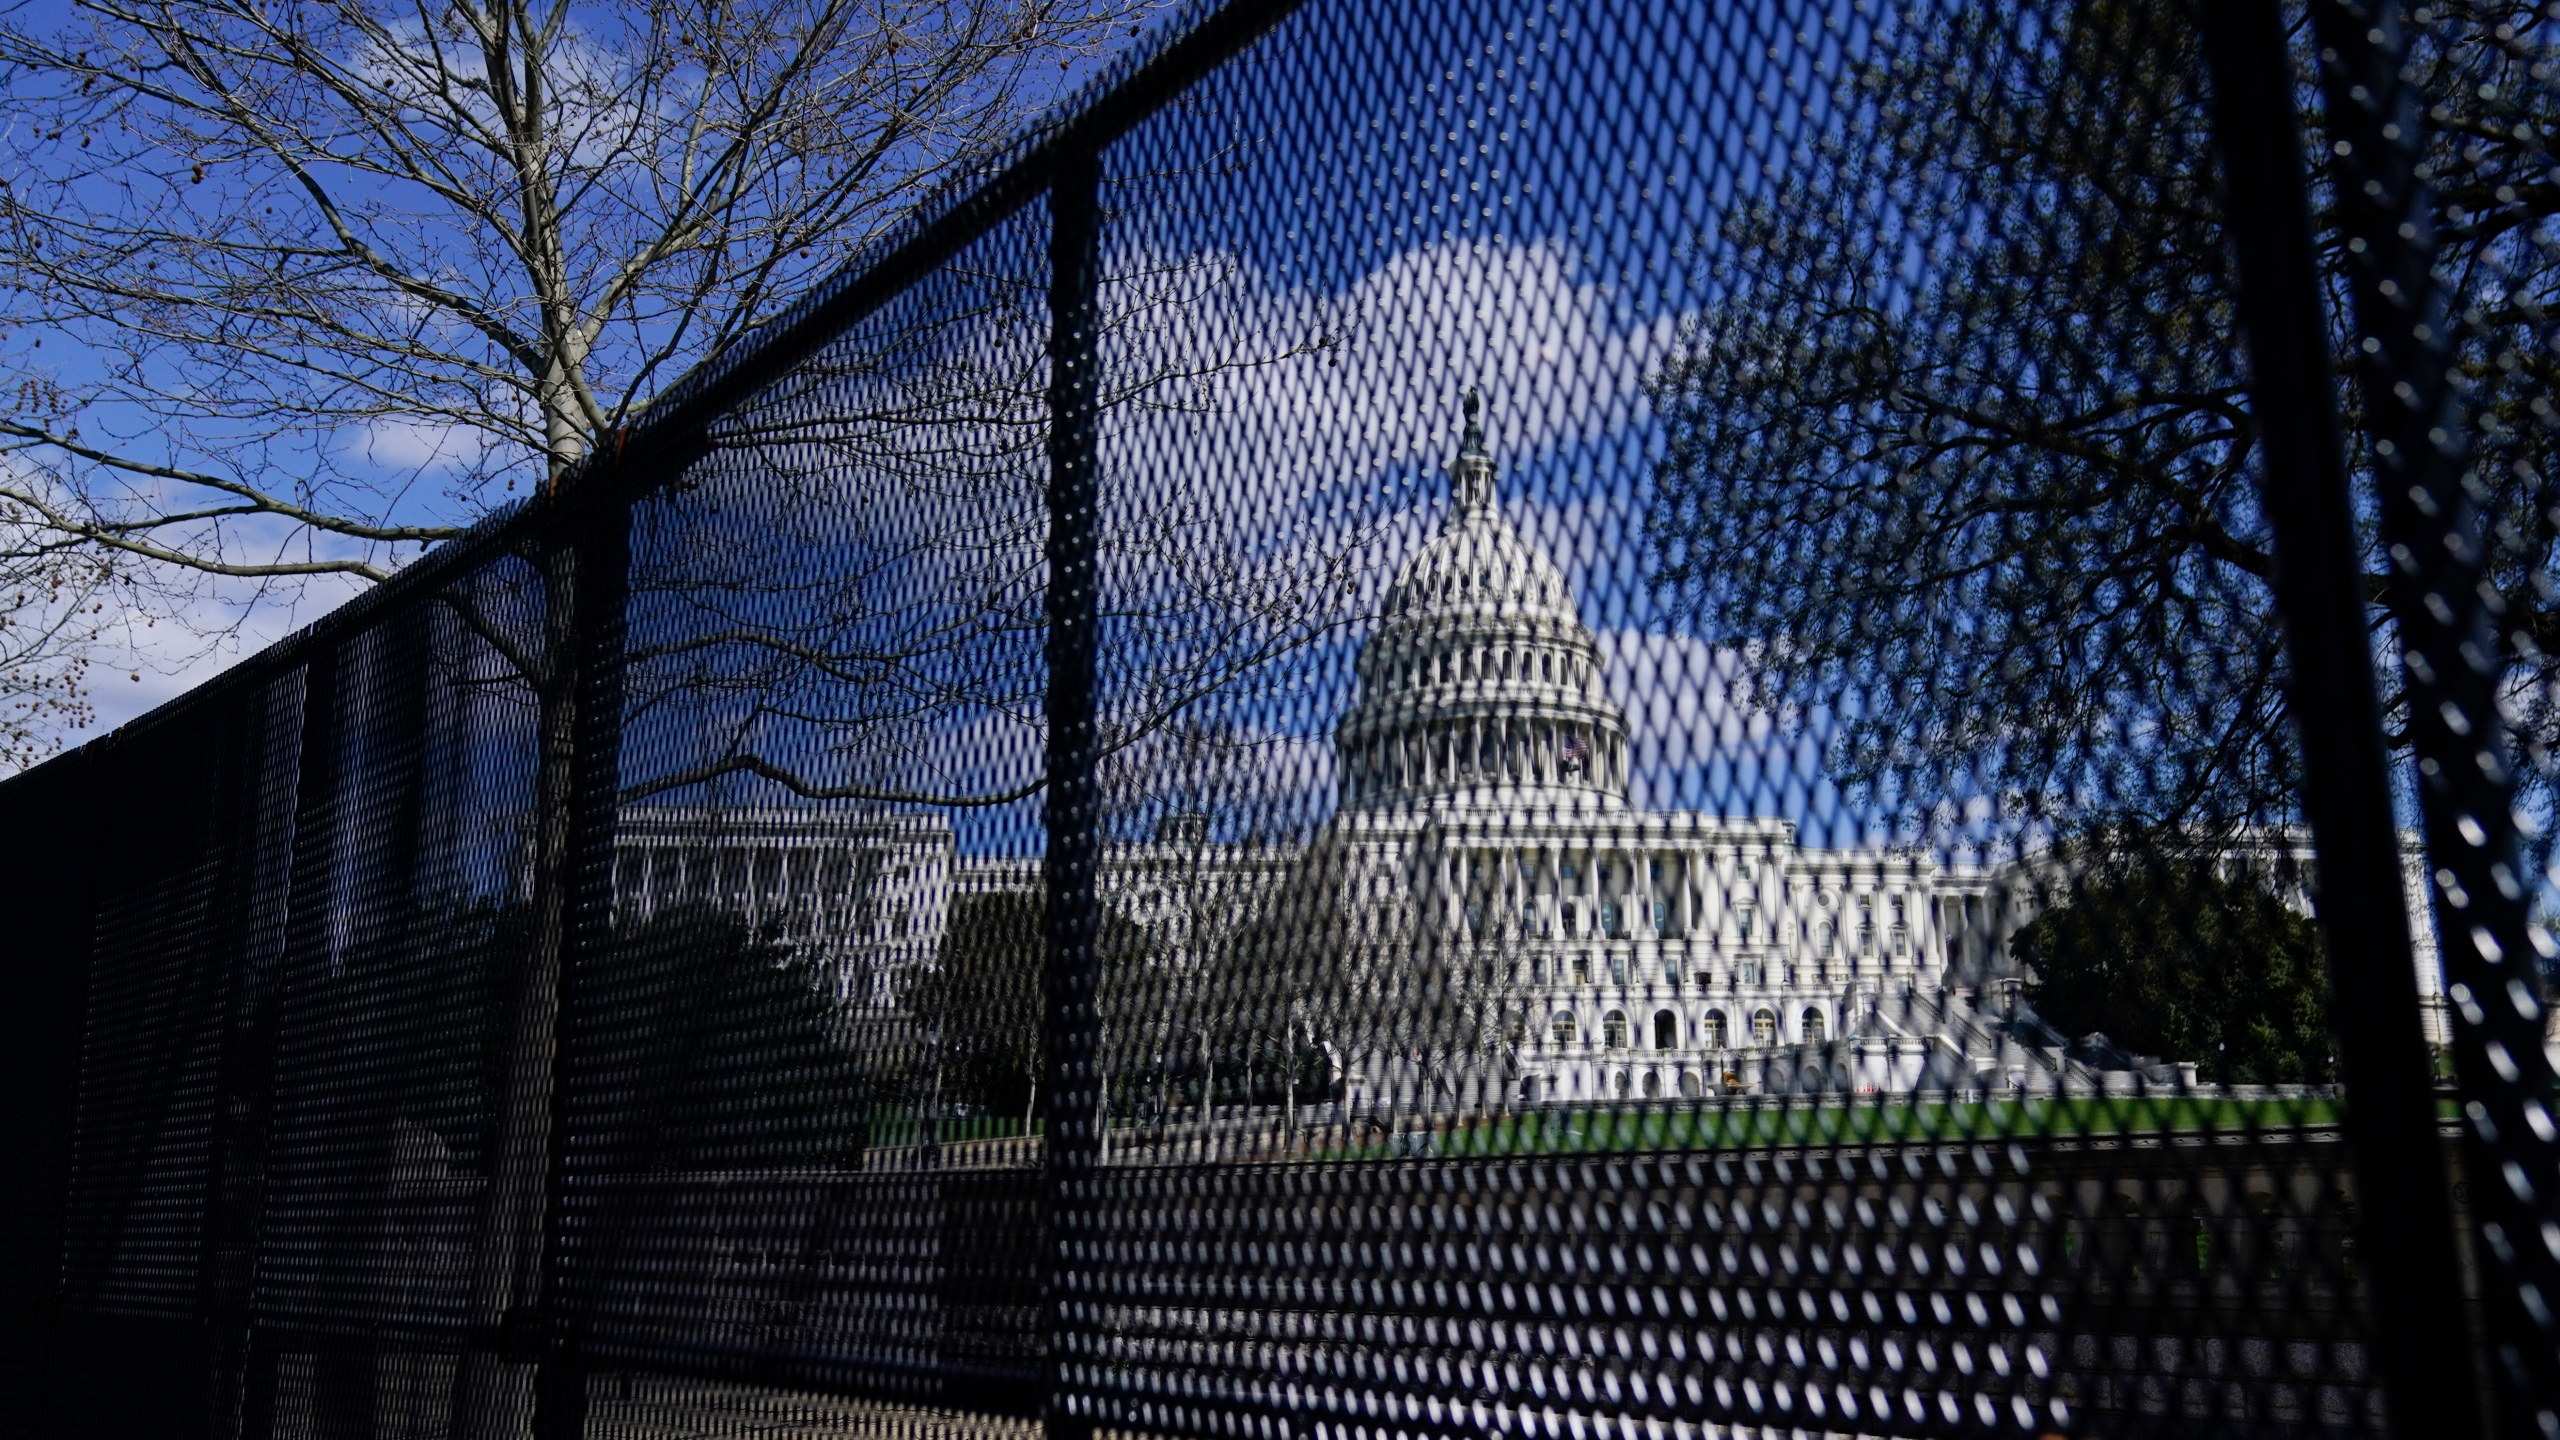 In this April 2, 2021, file photo, the U.S. Capitol is seen behind security fencing on Capitol Hill in Washington. Law enforcement concerned by the prospect for violence at a rally in the nation's Capitol next week are planning to reinstall protective fencing that surrounded the U.S. Capitol for months after the Jan. 6 insurrection there, according to a person familiar with the discussions. (AP Photo/Carolyn Kaster, File)